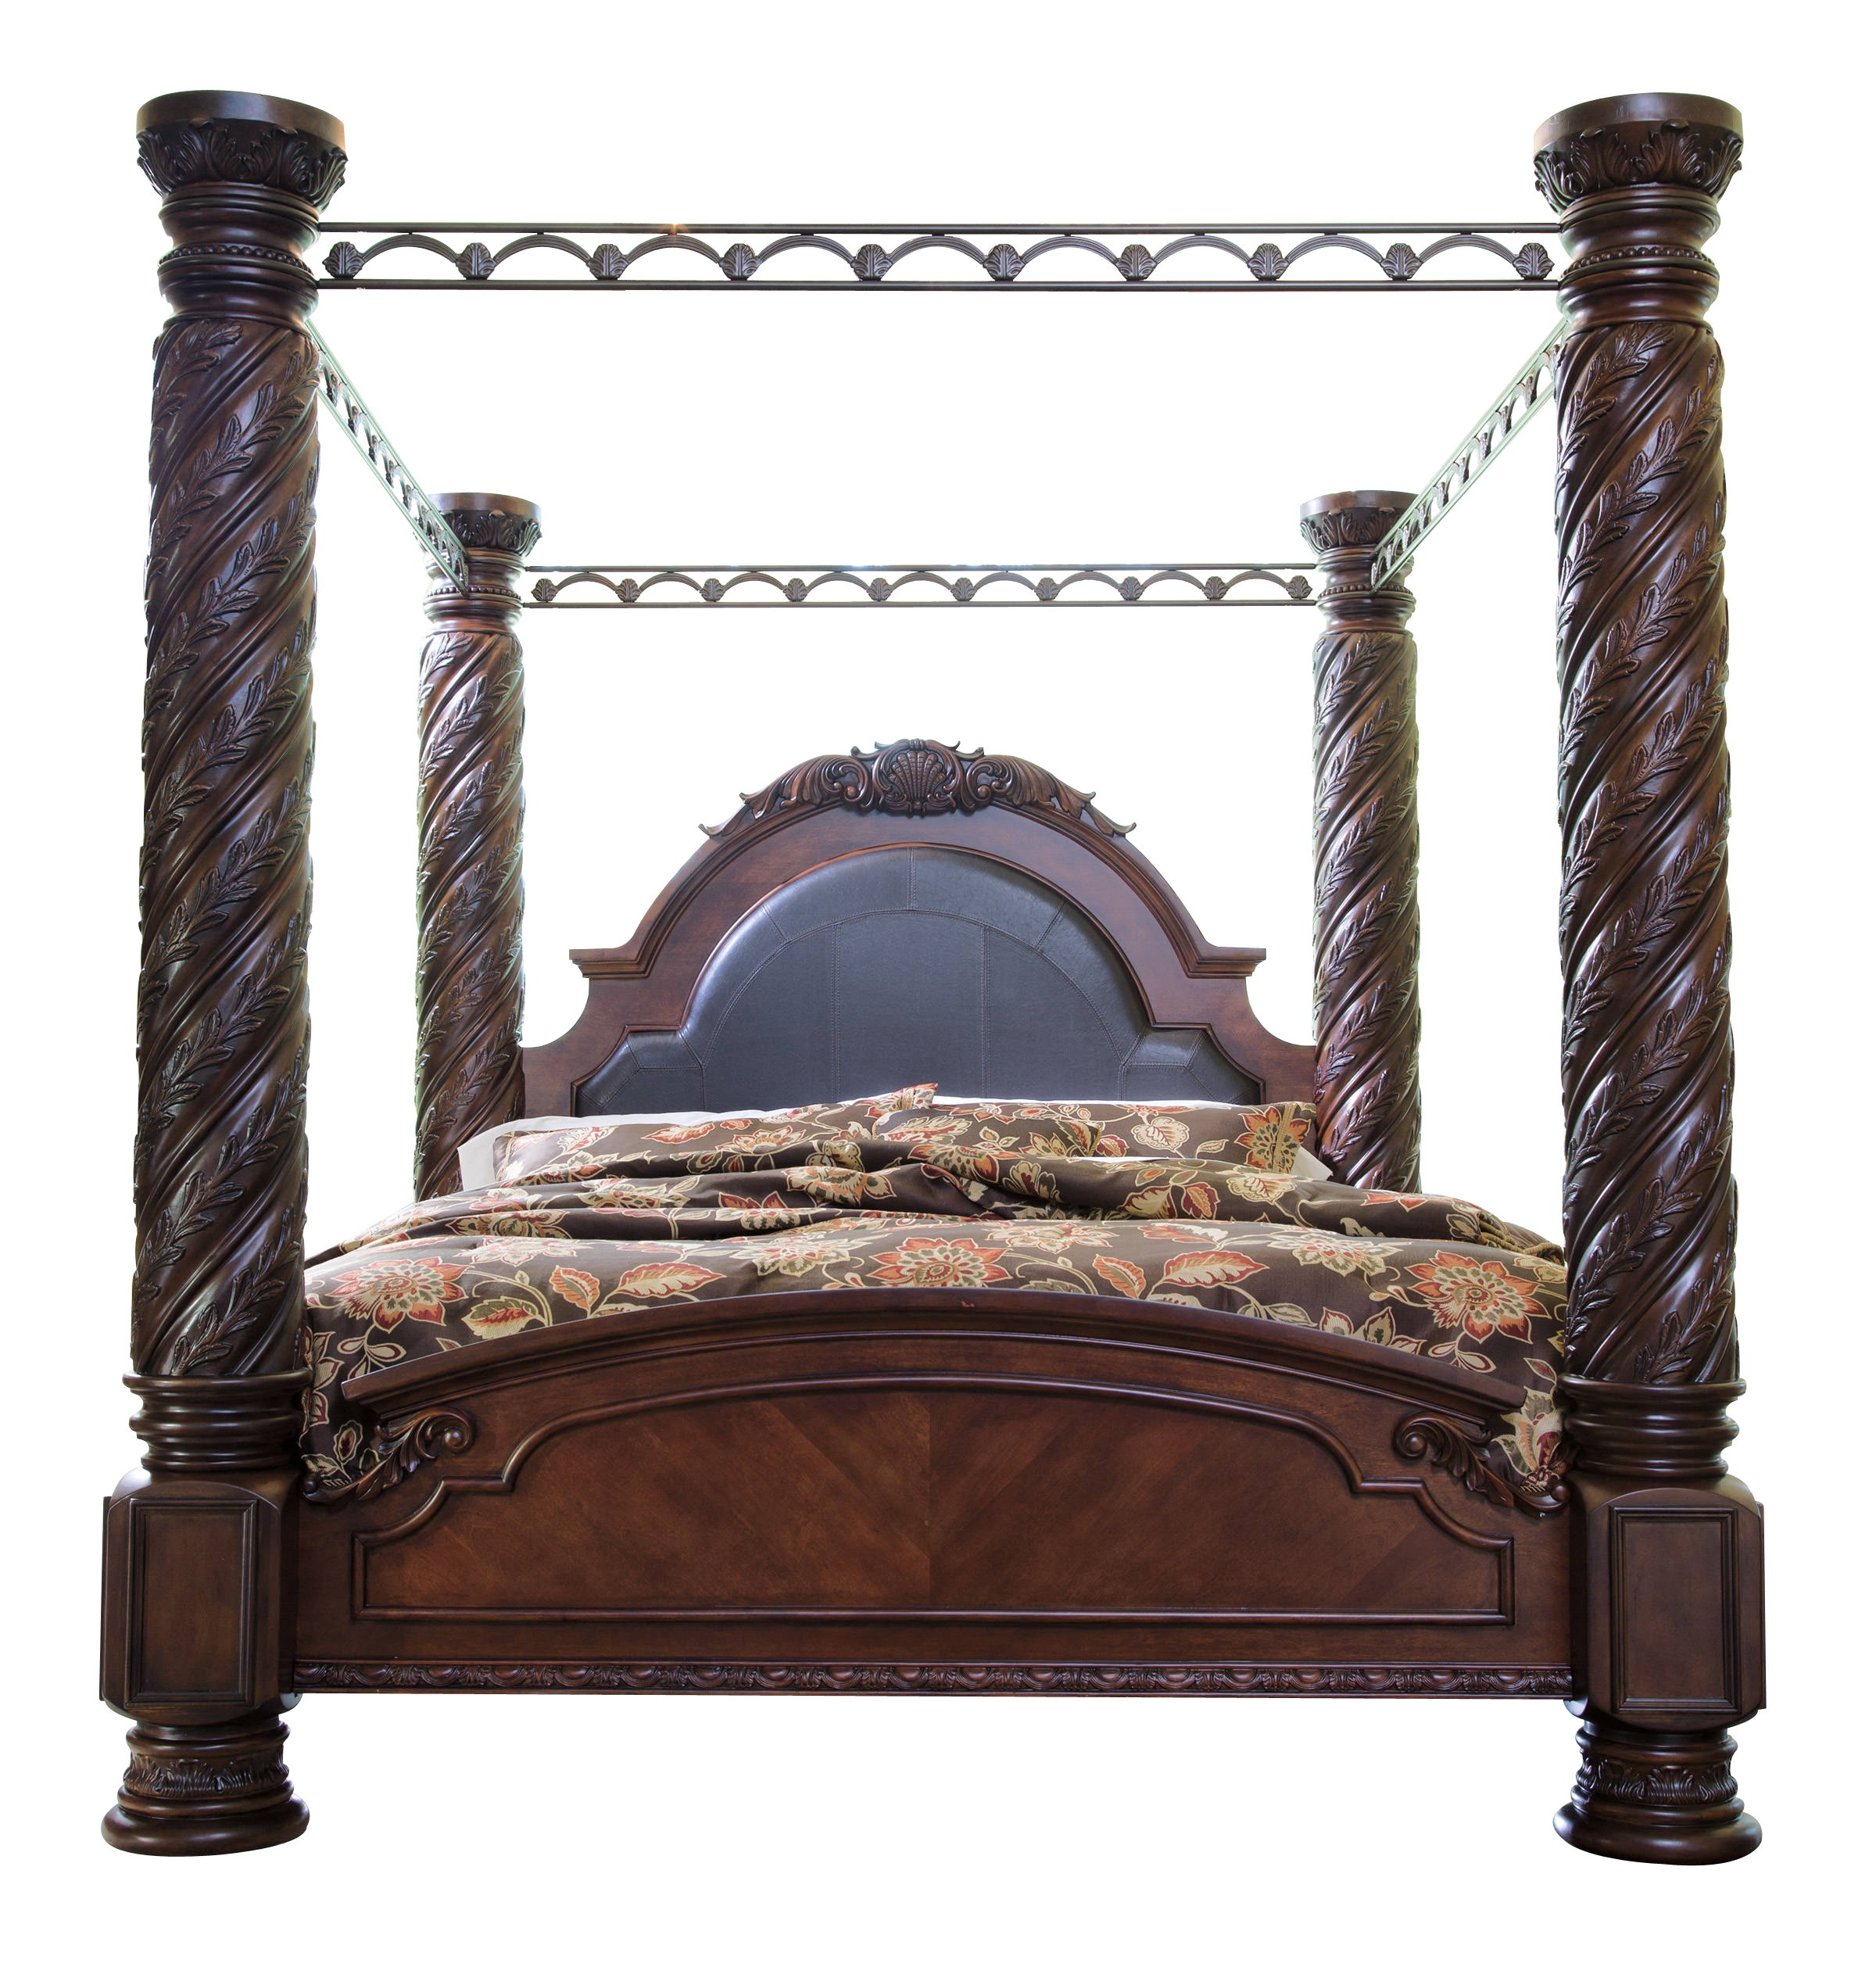 Ashley Furniture North Shore Dark Brown King Bed The Classy Home - Ashley furniture northshore bedroom set